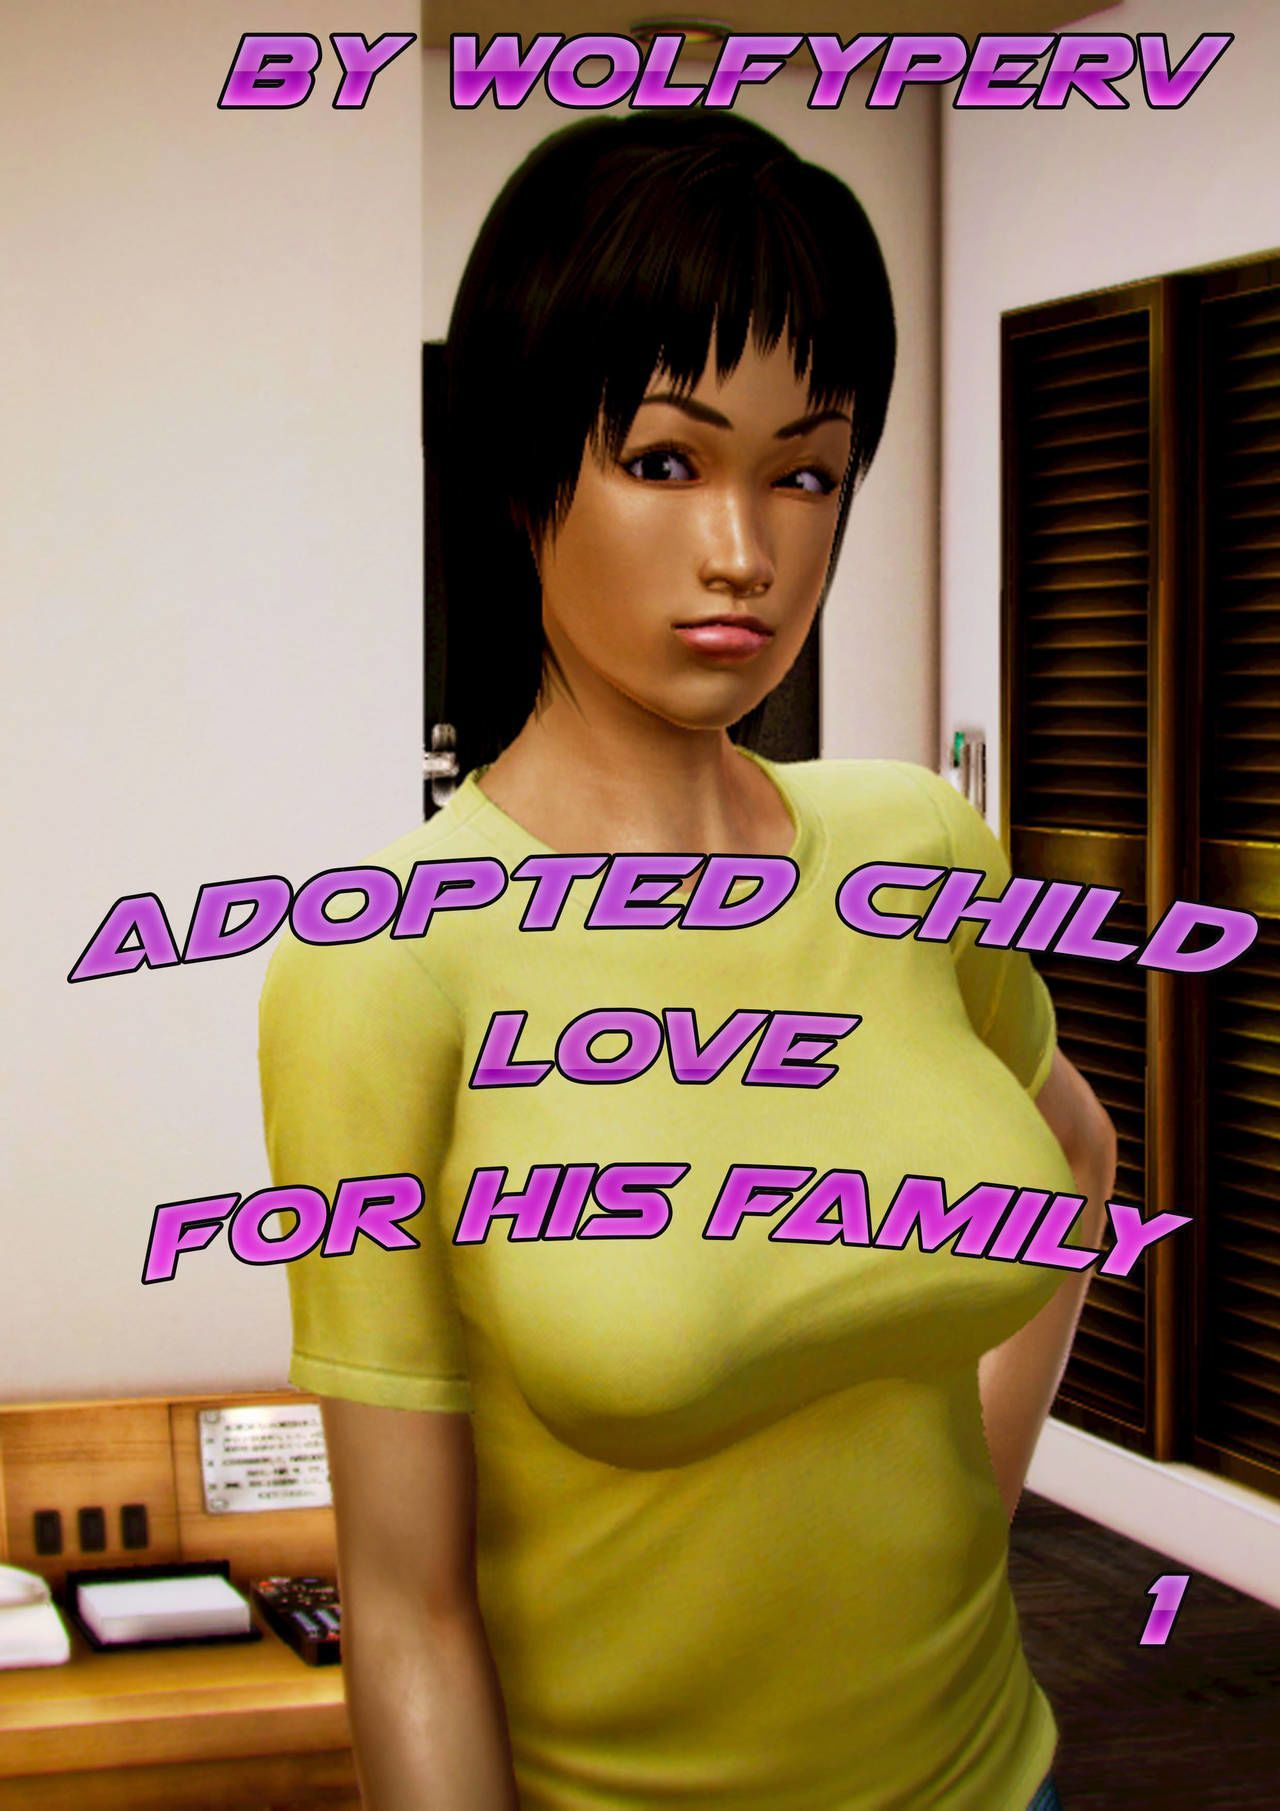 [Wolfyperv] Adopted Child Love for his Family 1